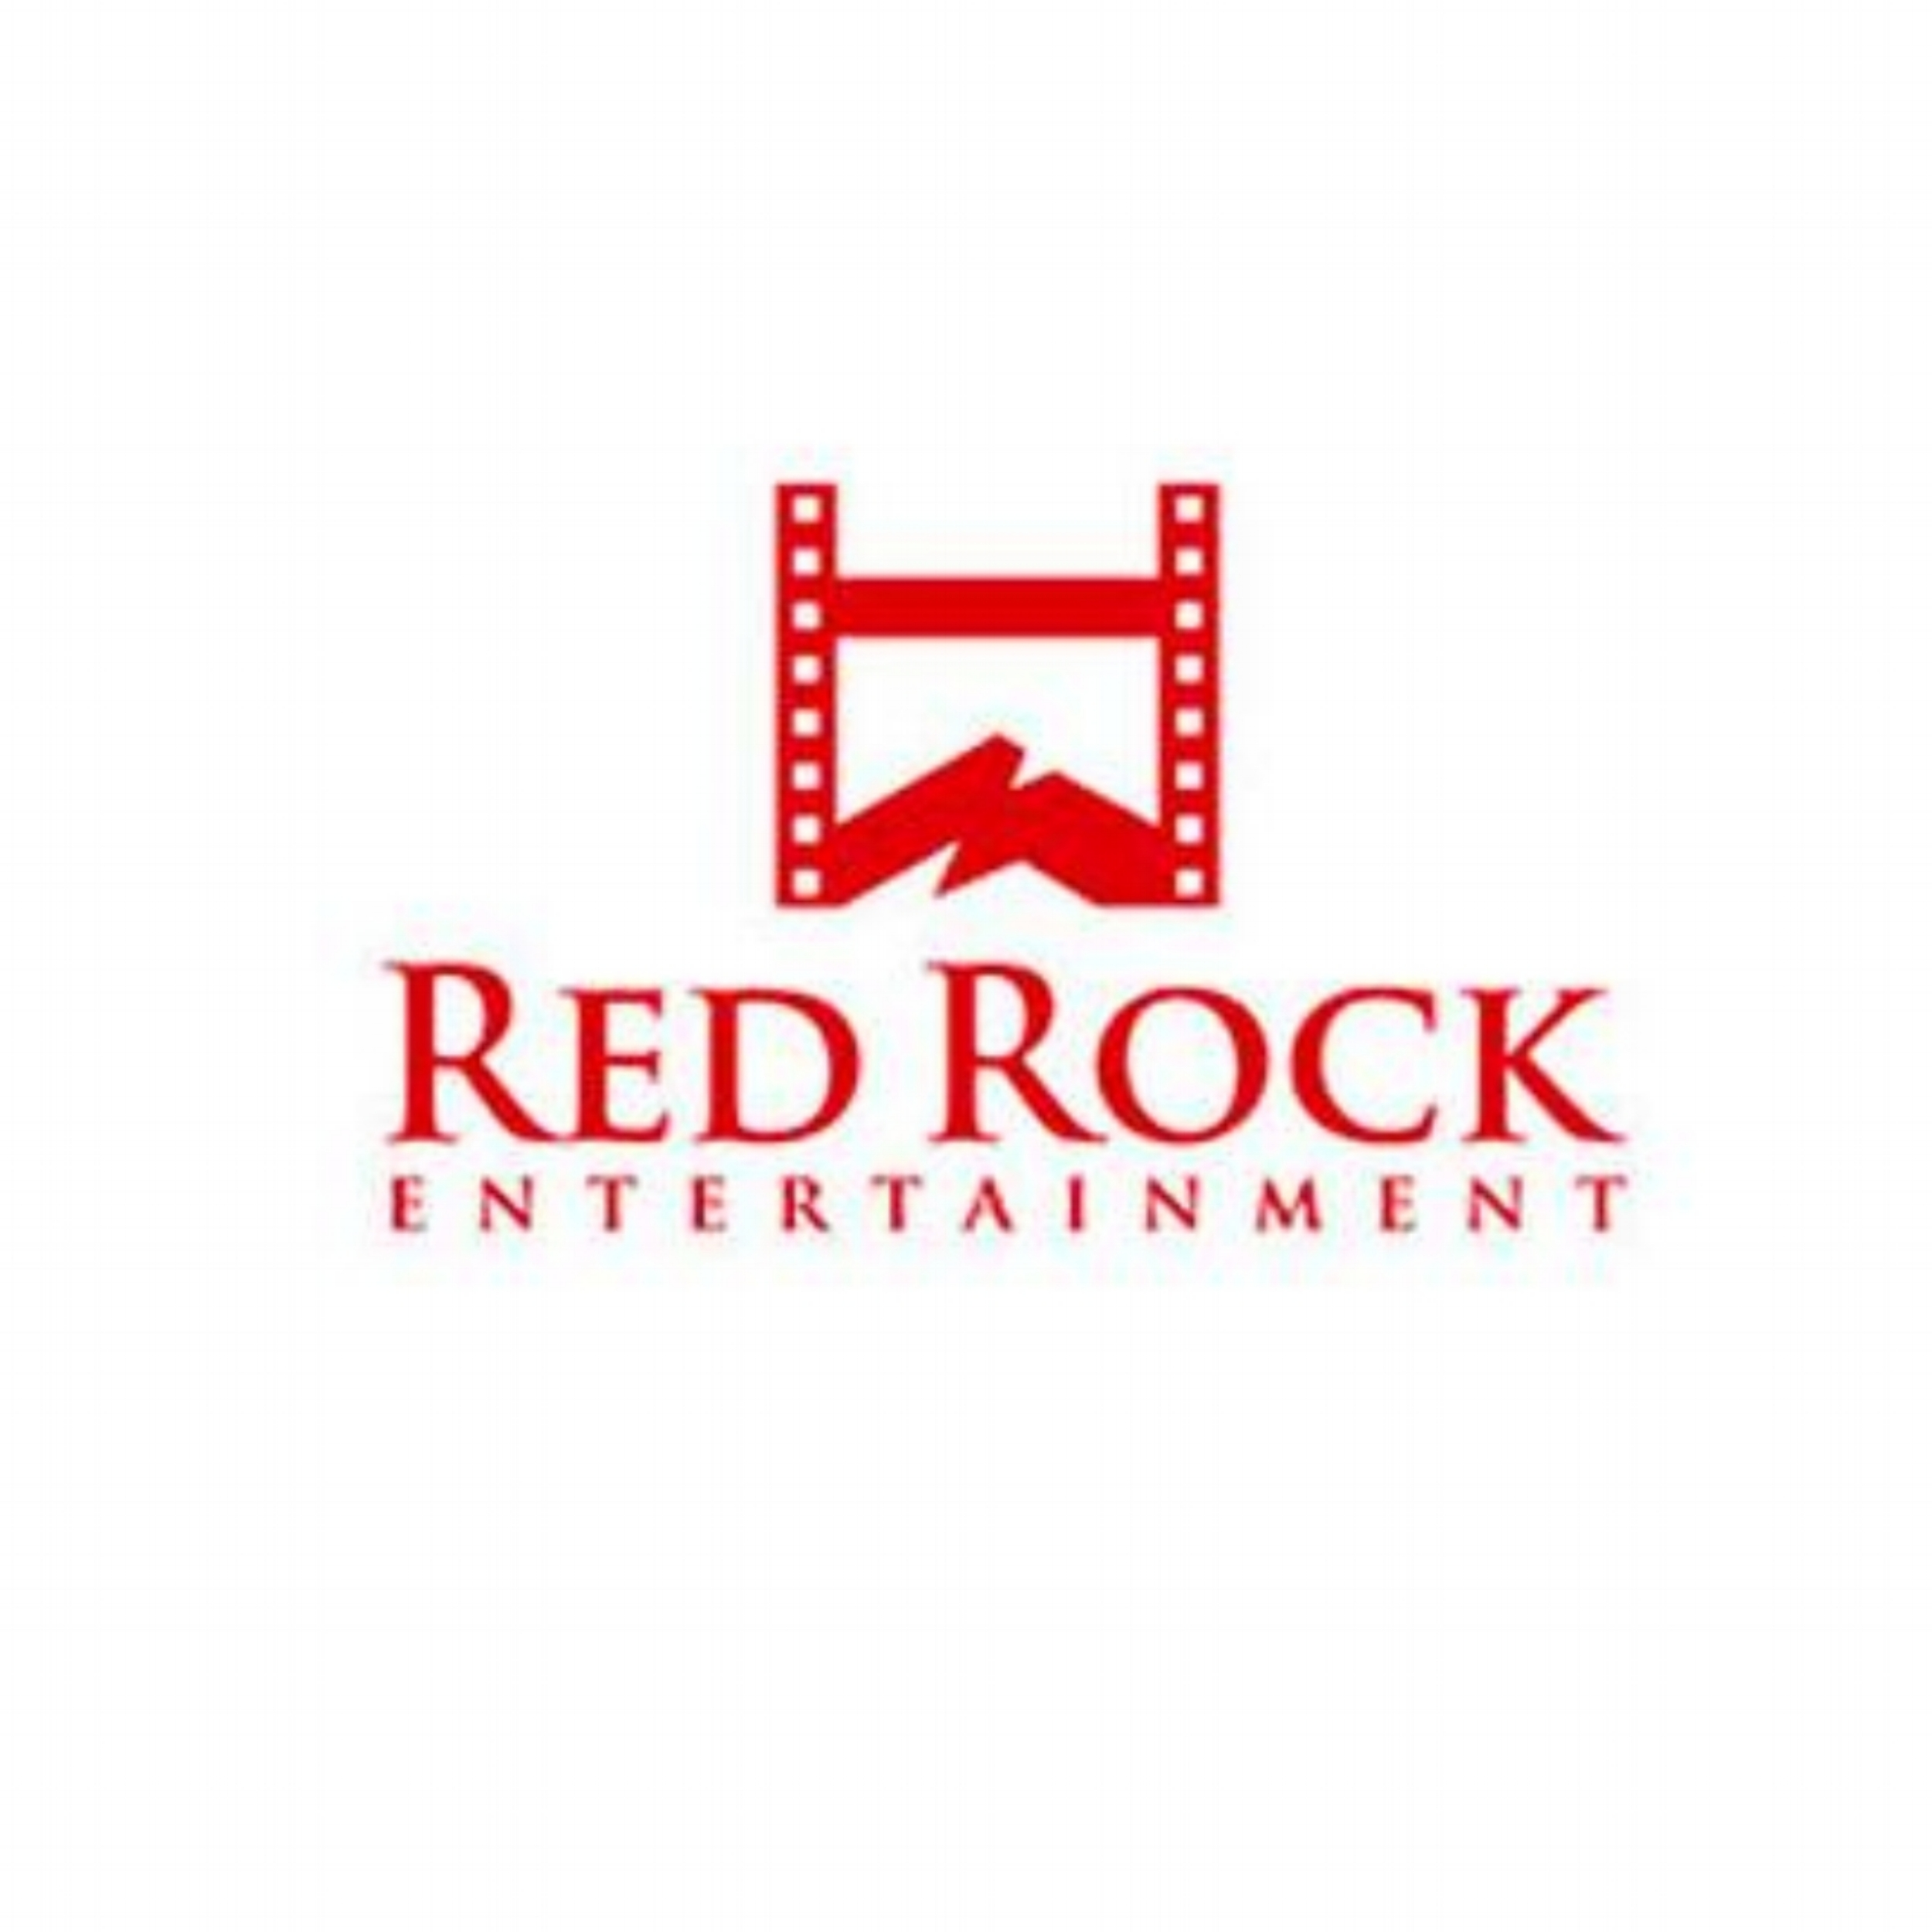 logo-red-rock-entertainment.jpg